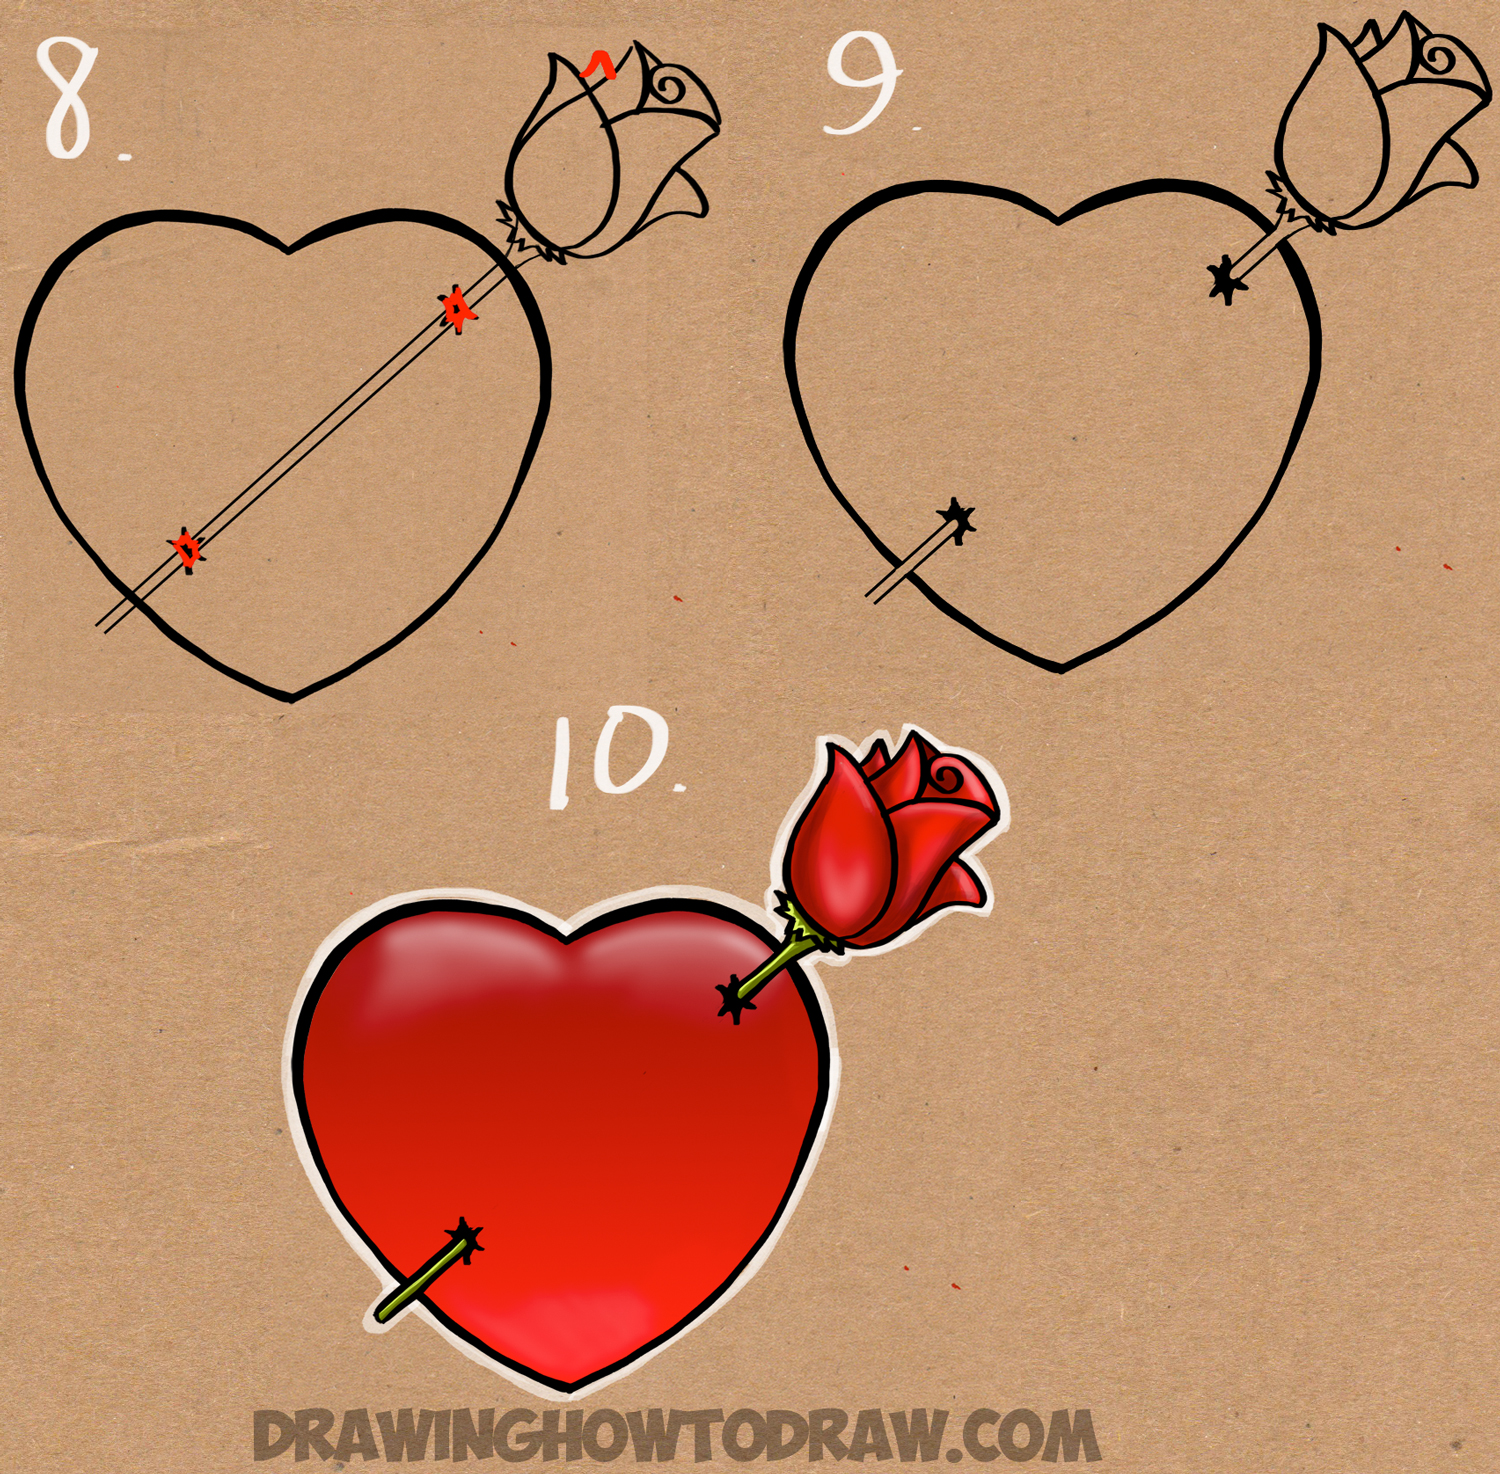 How To Draw A Heart With A Rose Piercing It Like An Arrow How To